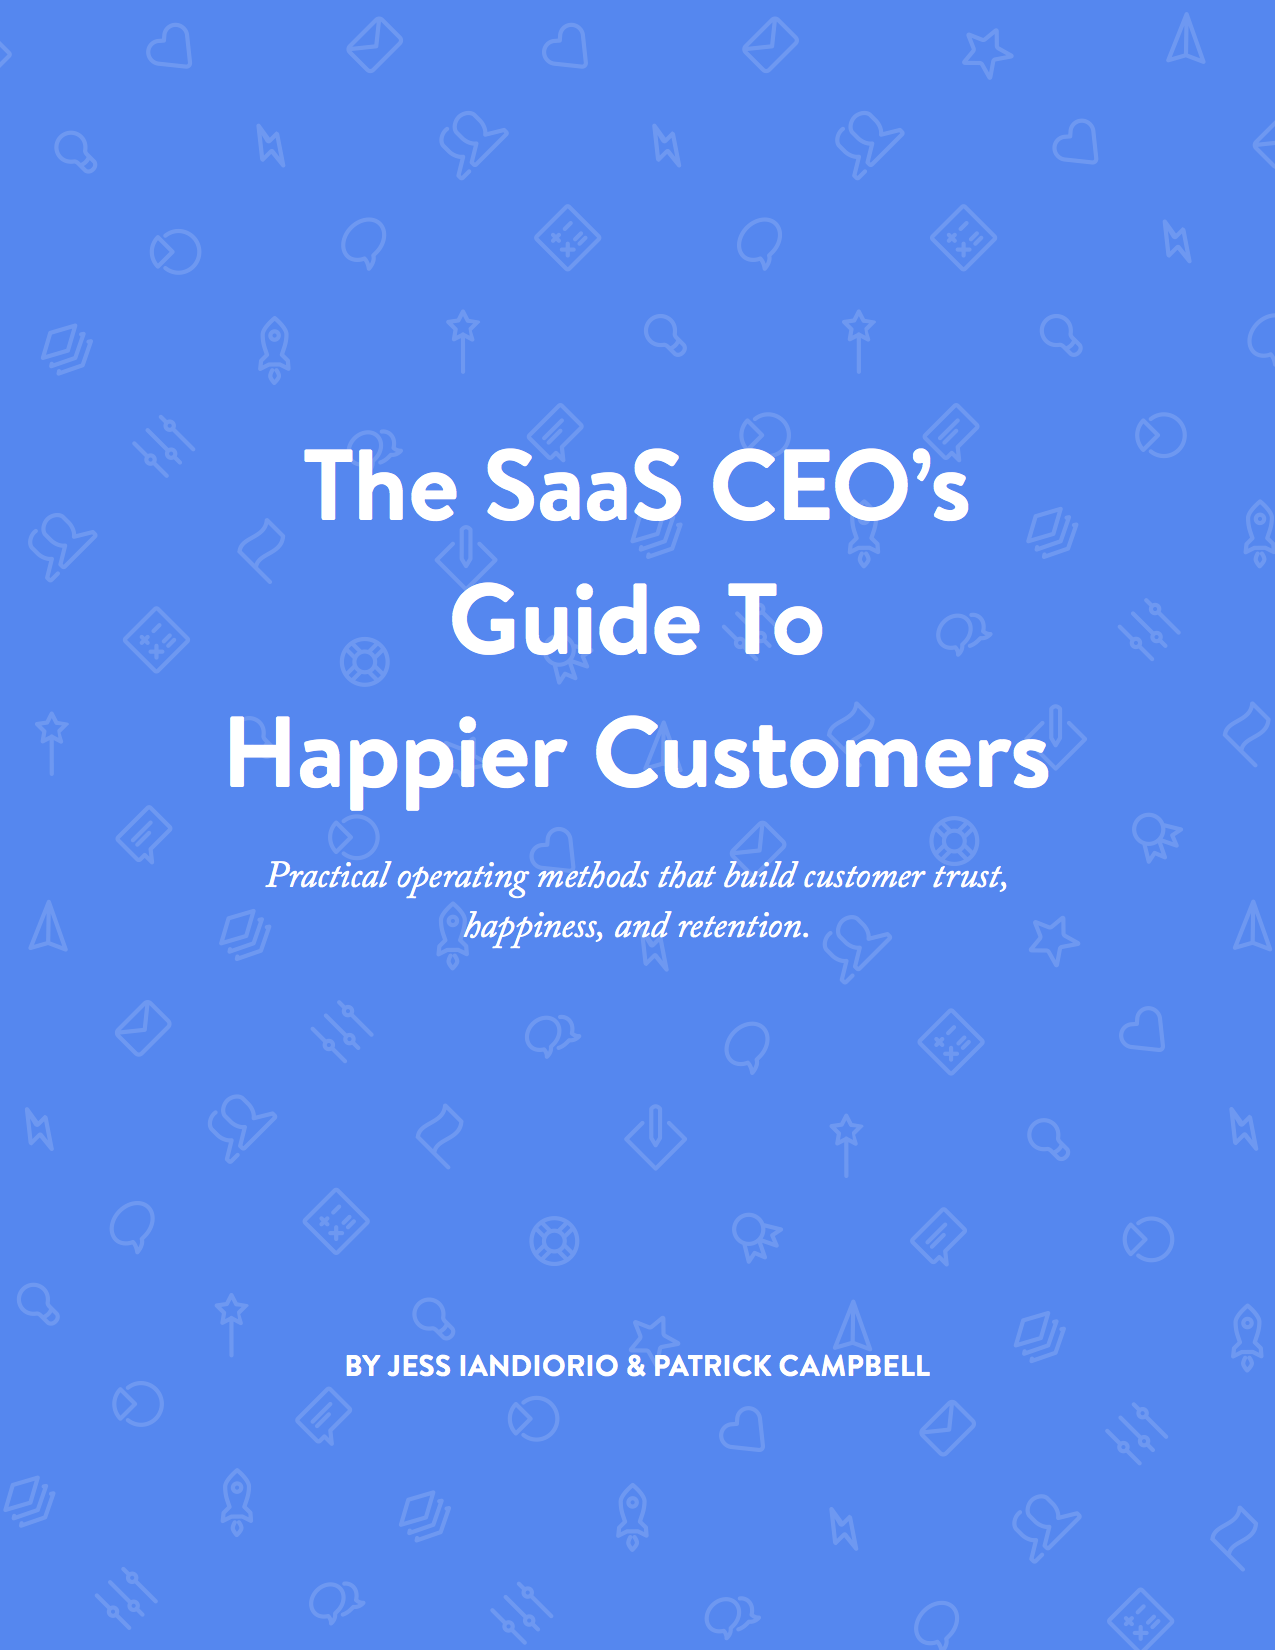 SaaSCEOGuidetoHappierCustomers.png